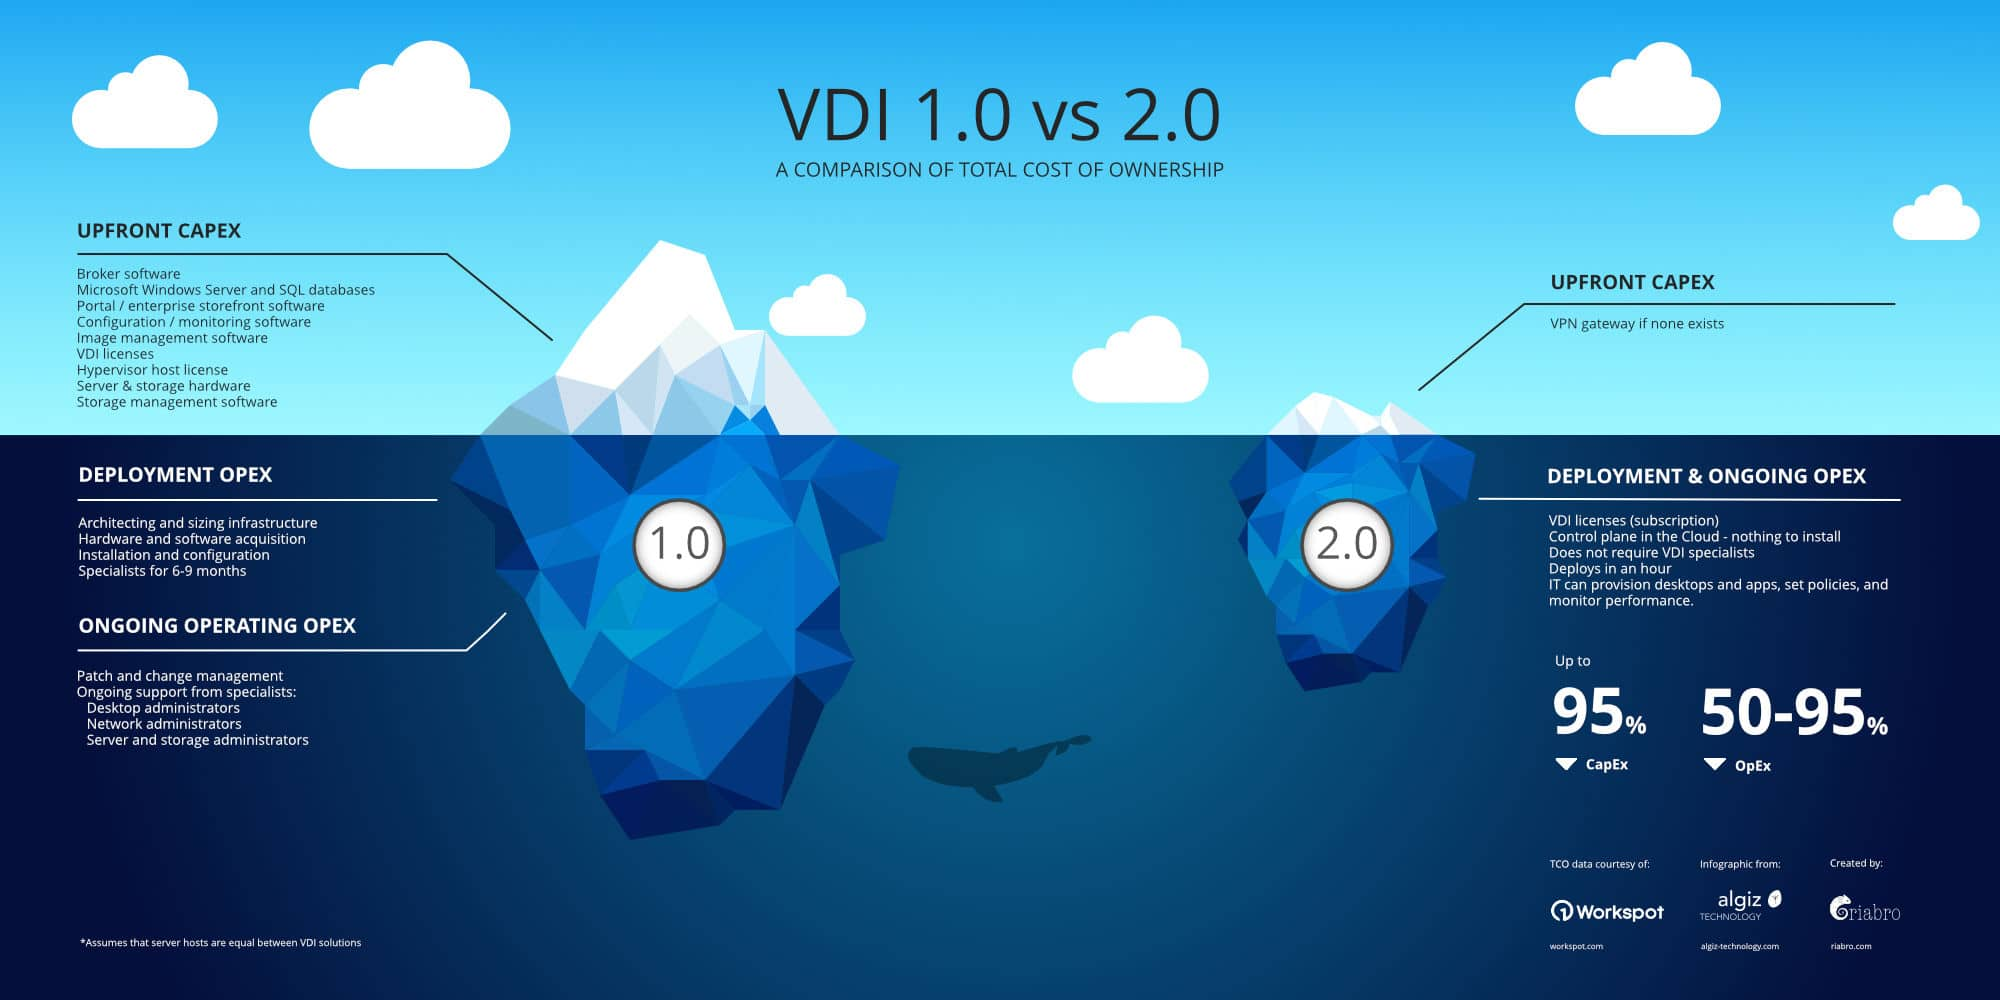 INFOGRAPHIC: Comparing the cost of VDI